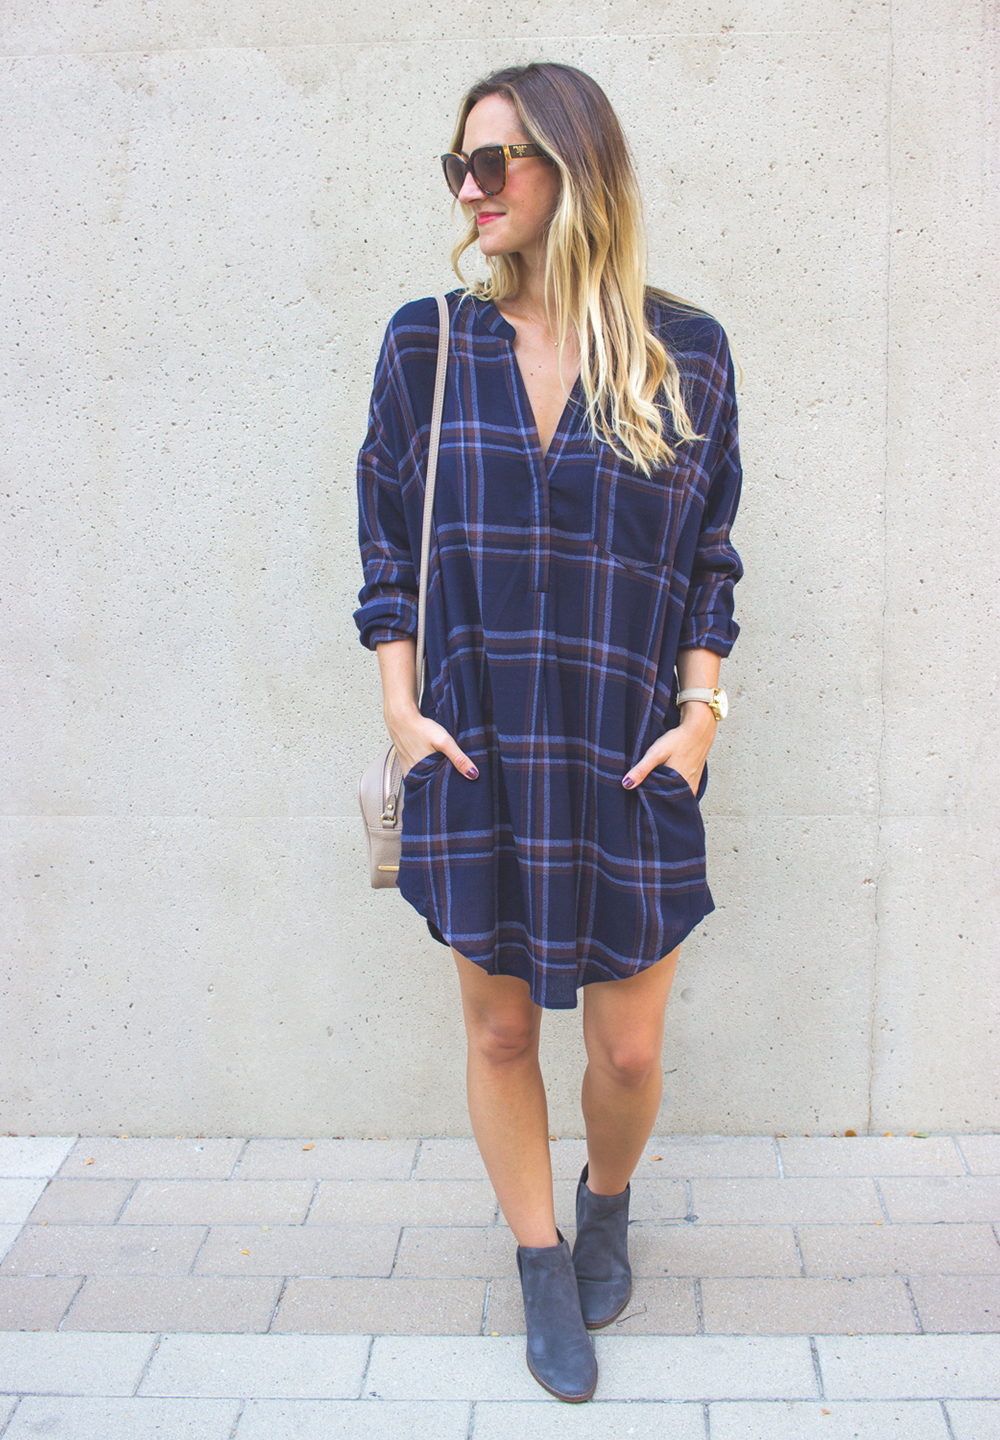 livvyland-blog-olivia-watson-plaid-flannel-shirt-shift-dress-dolce-vita-tesse-blue-suede-ankle-booties-navy-1